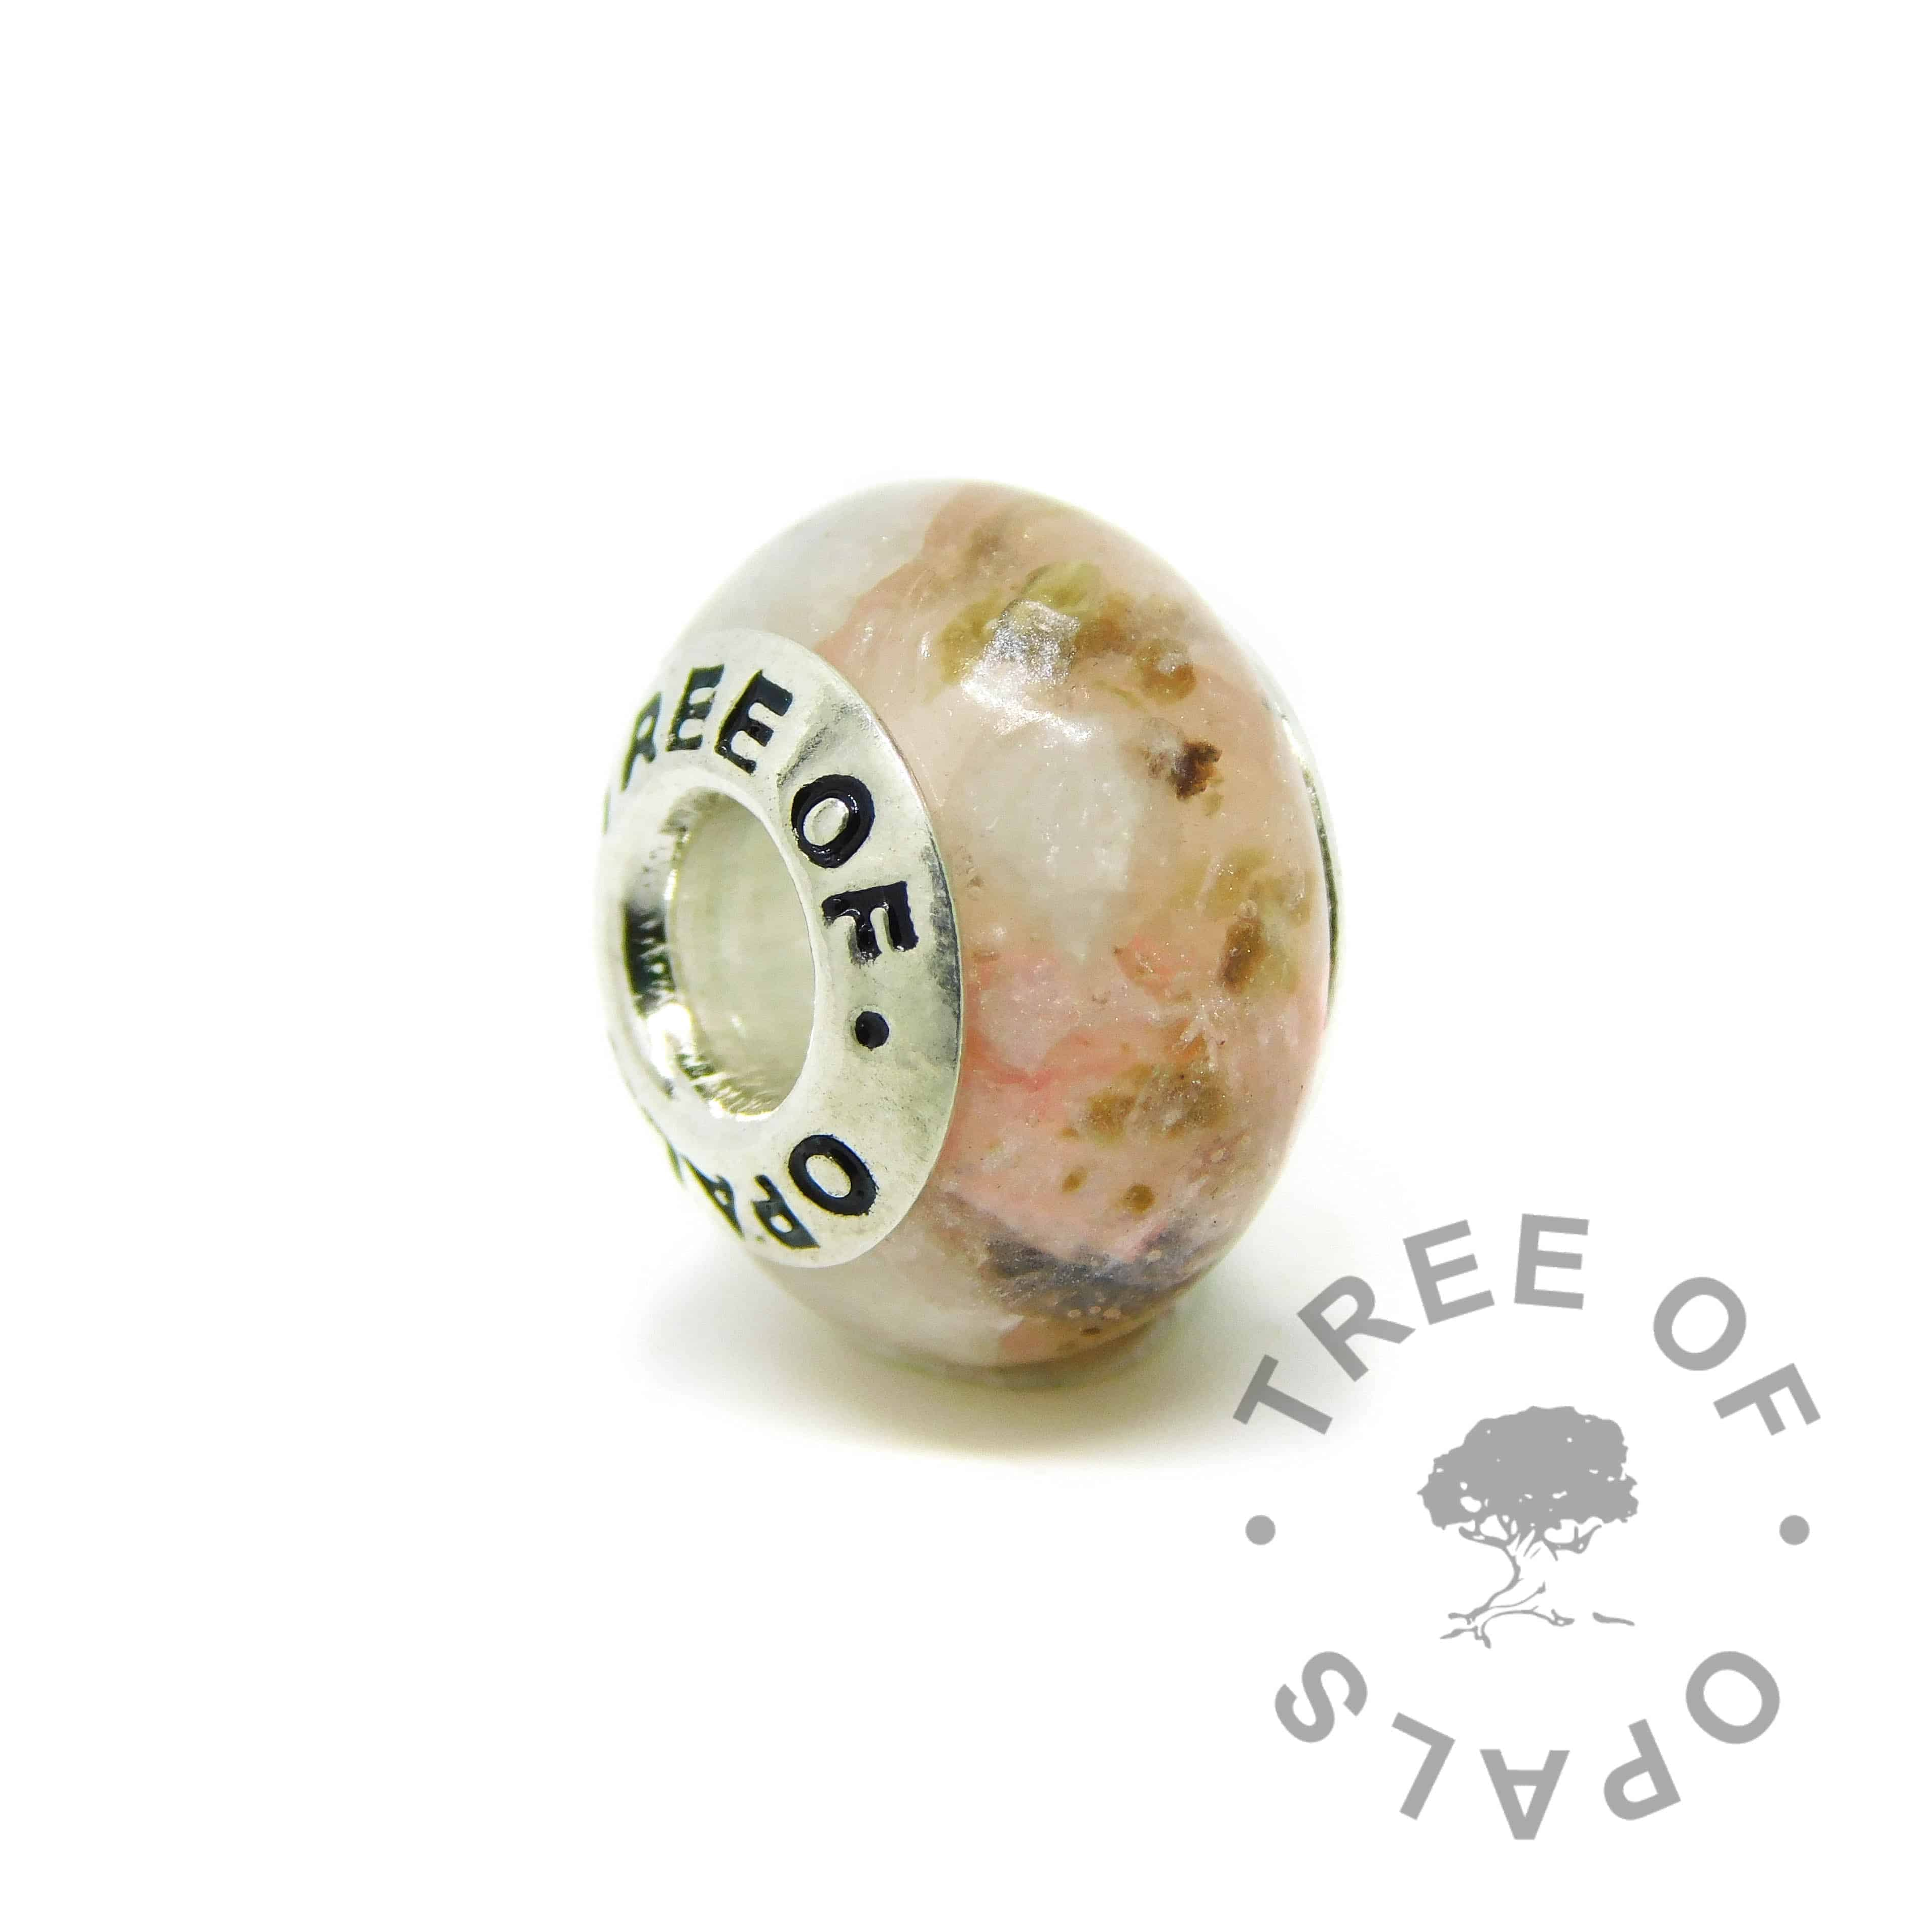 Umbilical cord charm. Placenta umbilical cord with fairy pink resin sparkle mix, March birthstone aquamarine. Set with solid sterling silver Tree of Opals core for Chamilia and Pandora bracelets. Watermarked copyright image by Tree of Opals